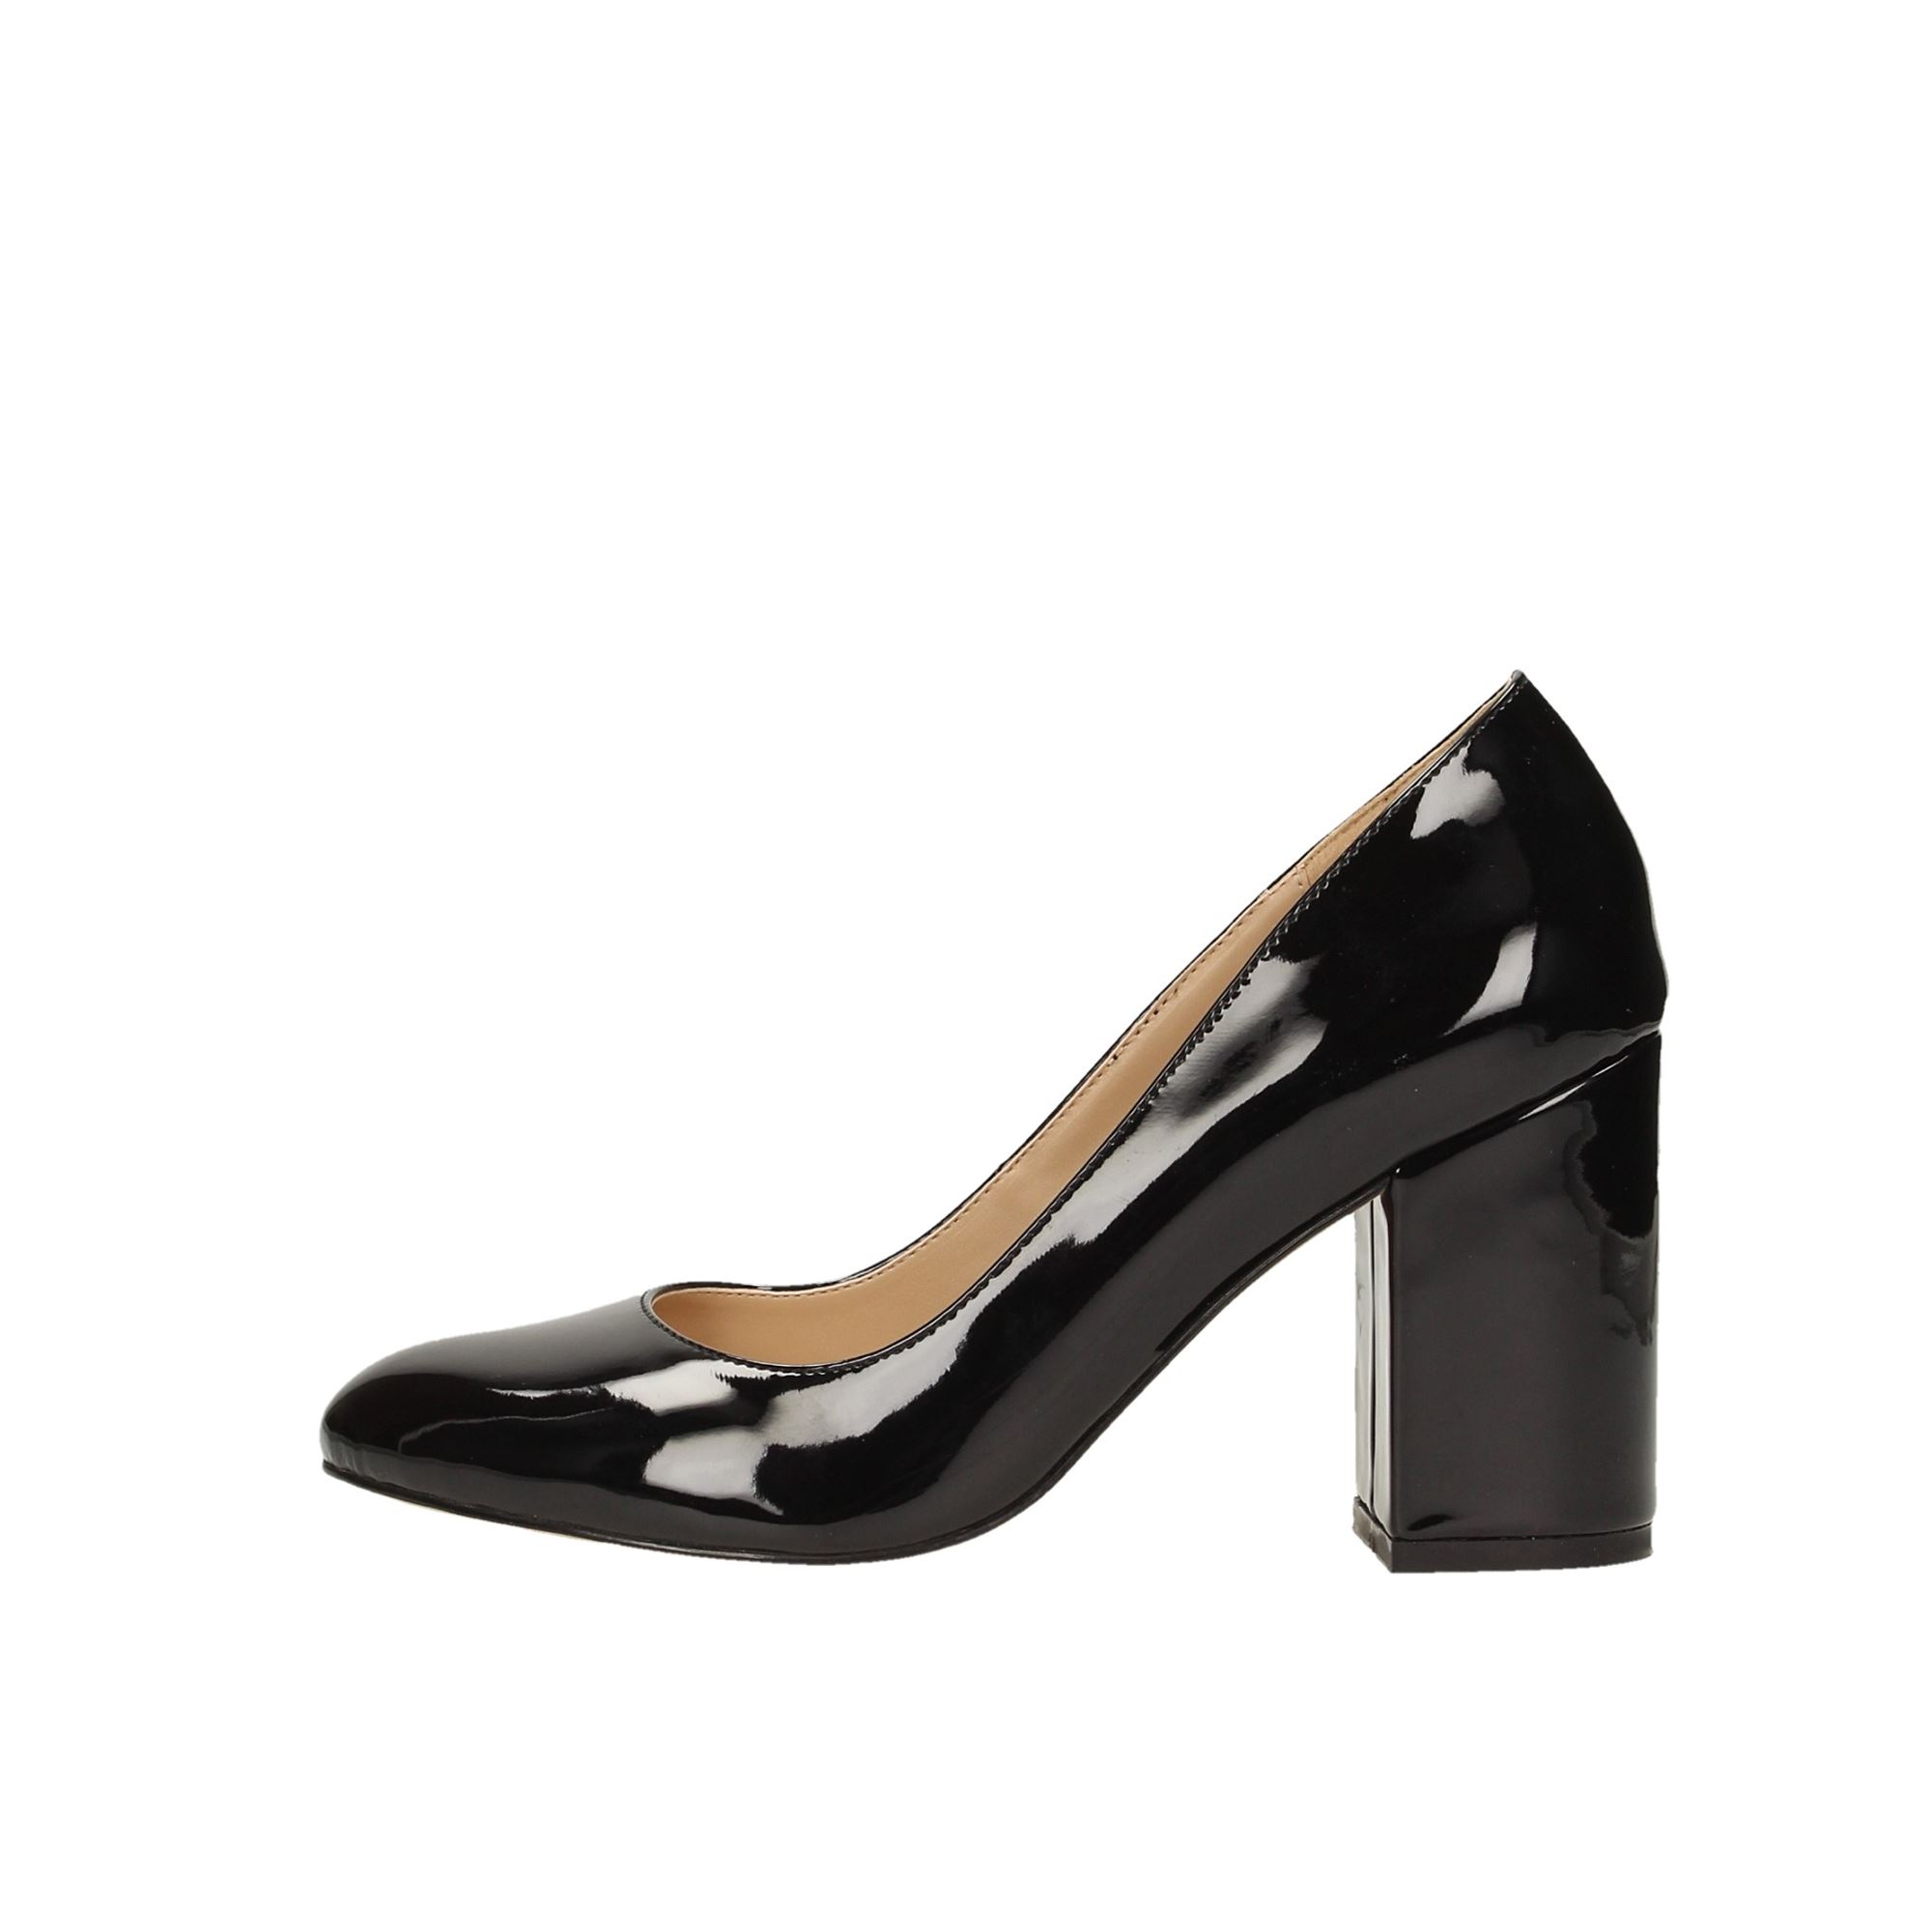 Tata Italia Shoes Woman Décolleté Black 9499A-1